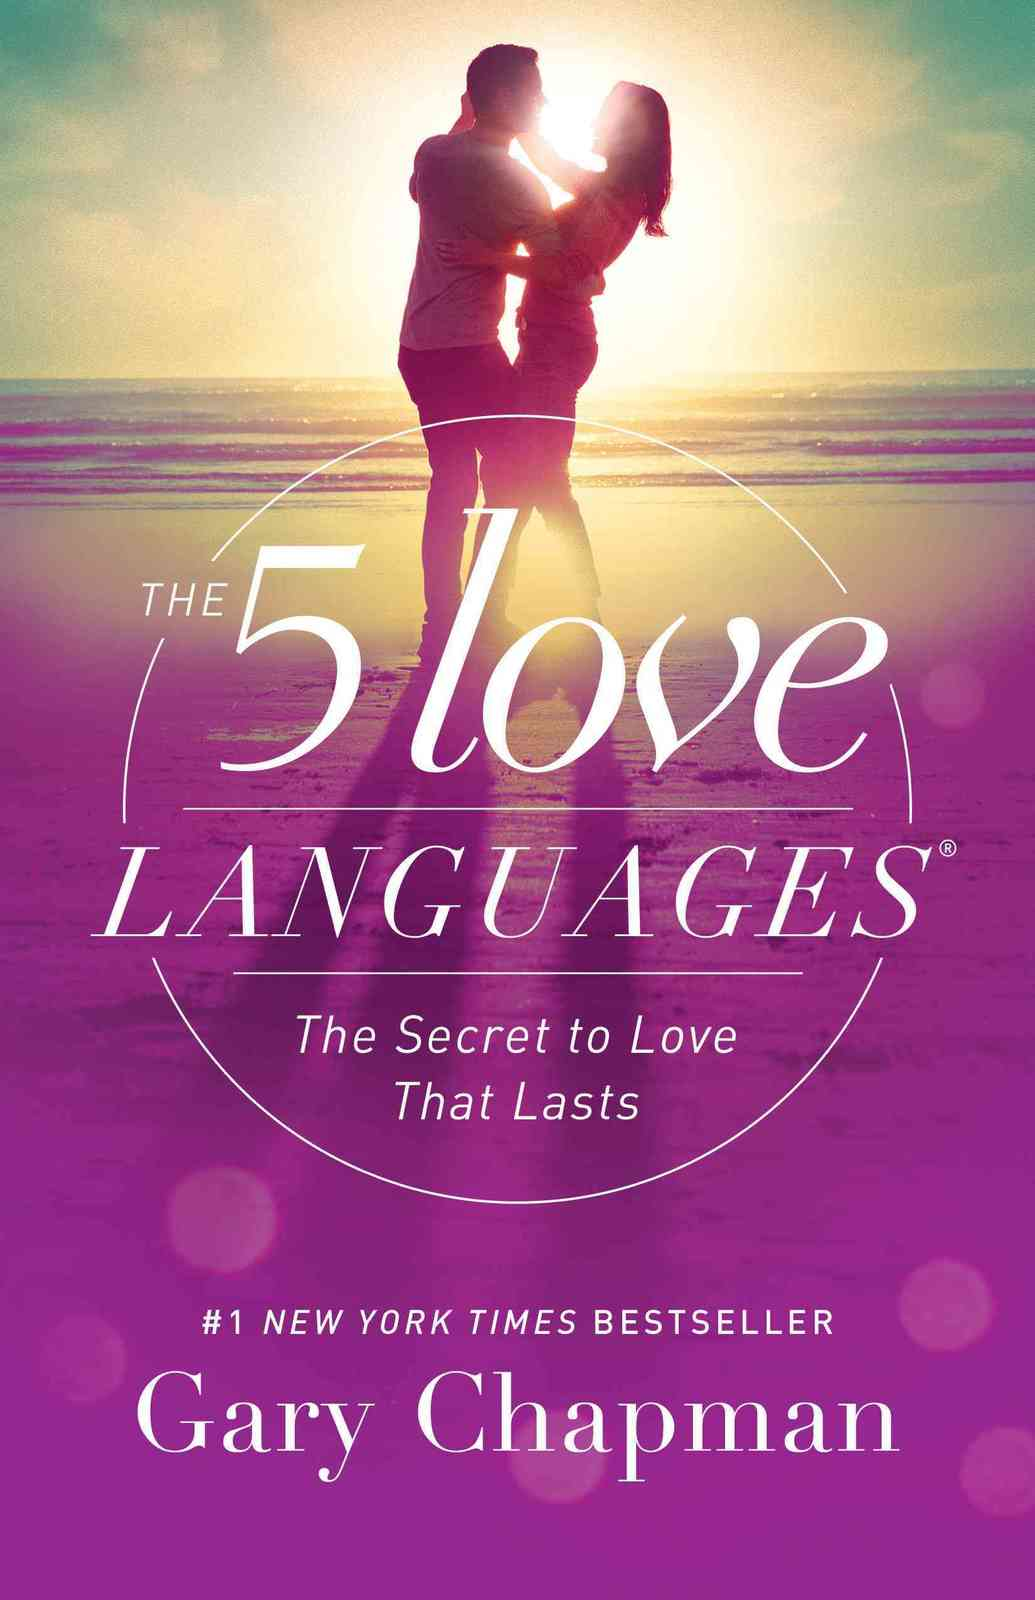 Five Love Languages Revised Edition by Gary Chapman image